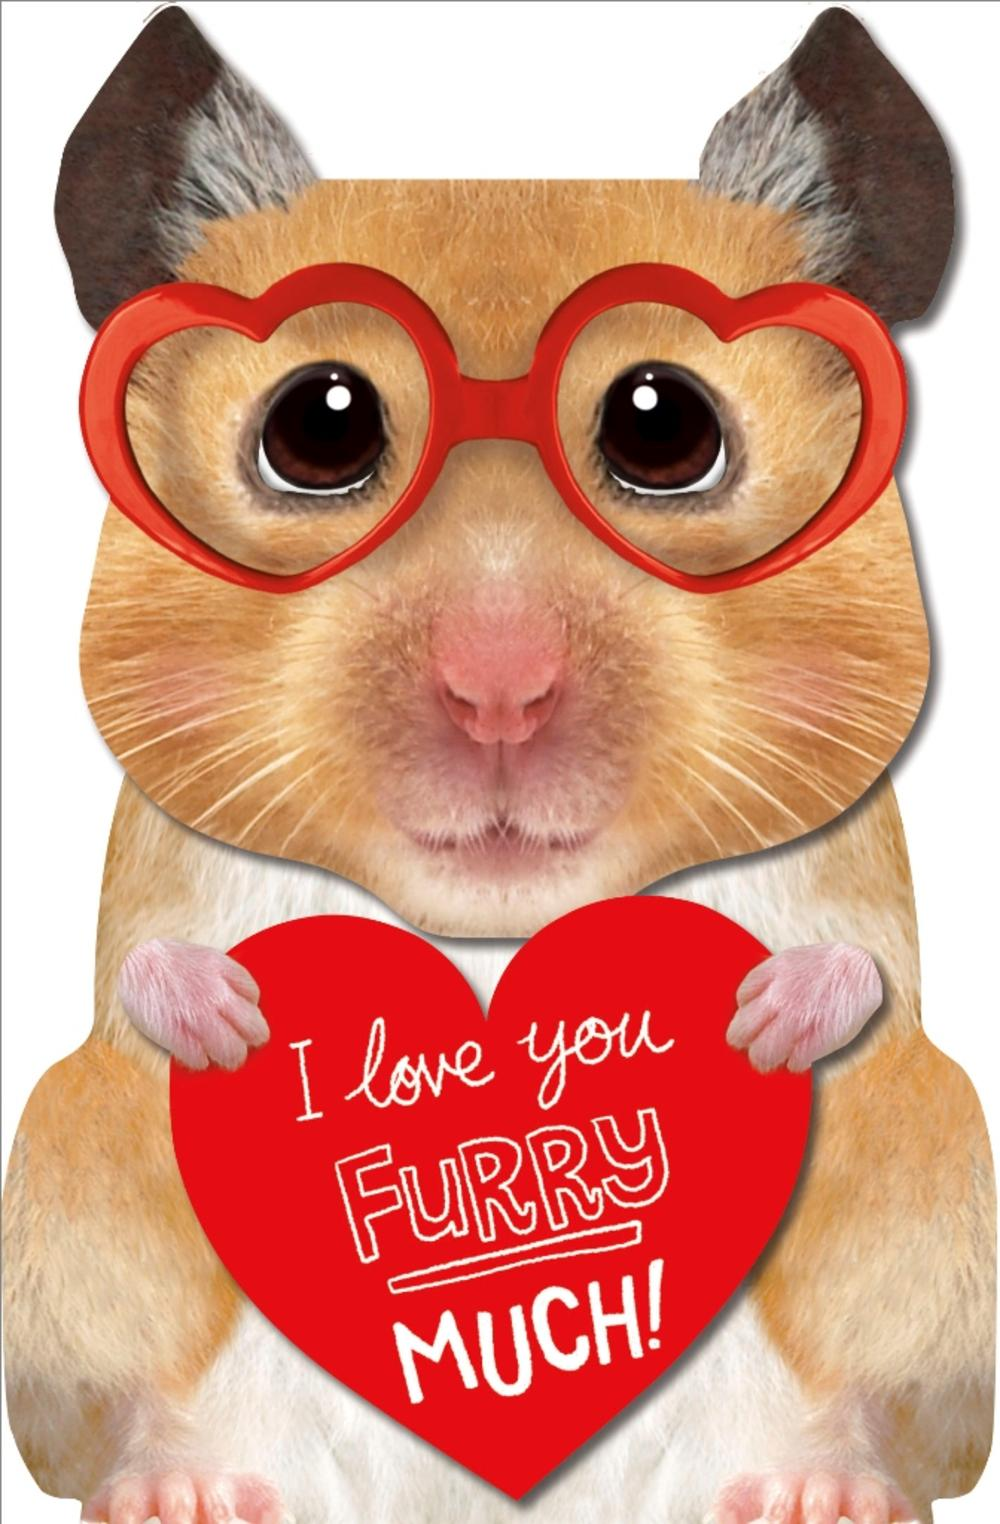 I Love You Furry Much 3D Hamster Valentine's Day Greeting Card